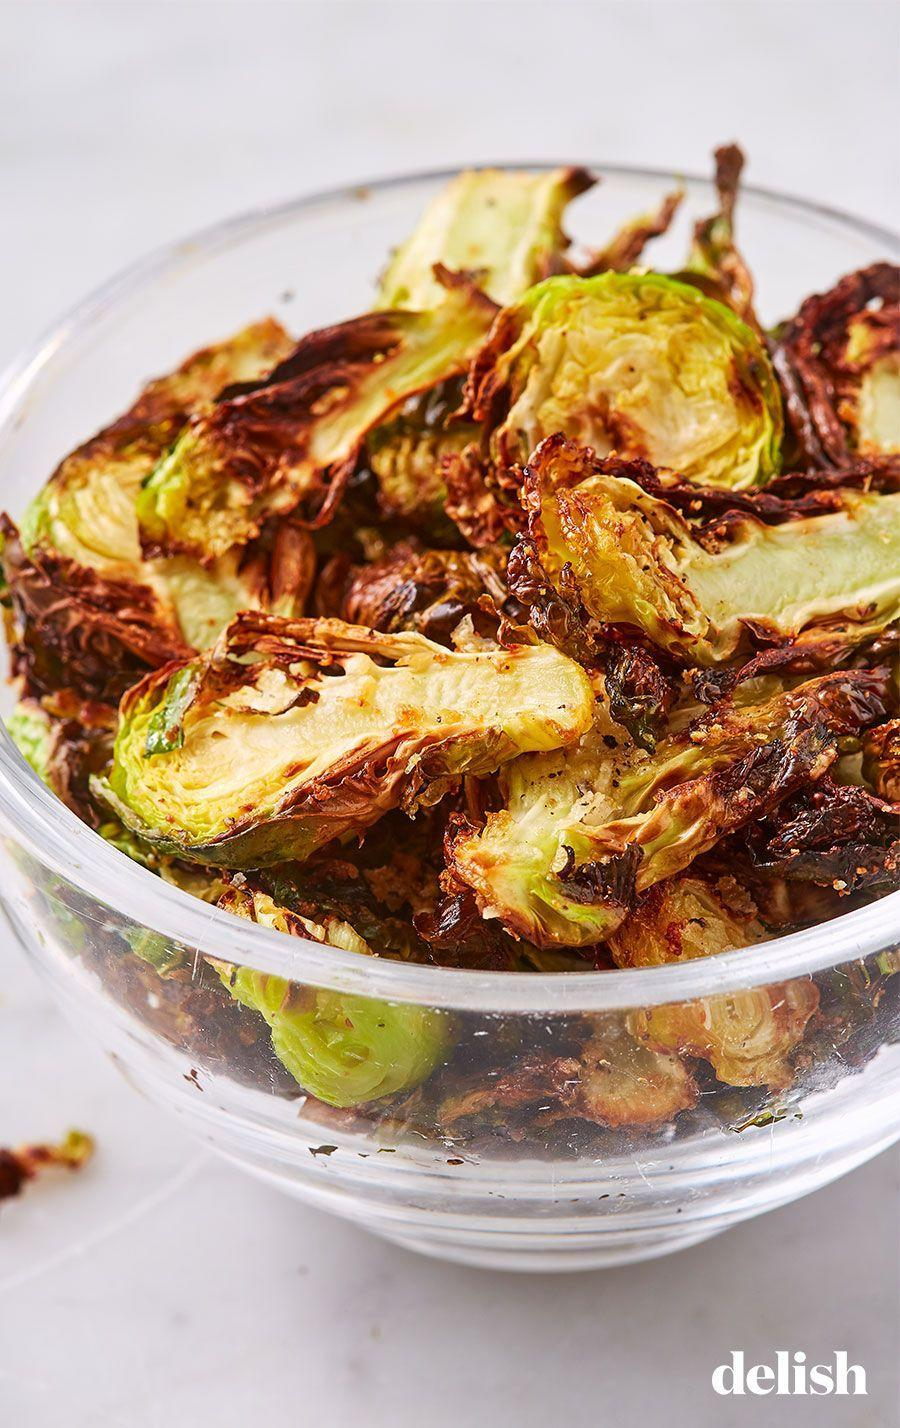 """<p>So much better than kale chips.</p><p>Get the recipe from <a href=""""https://delish.com/cooking/recipes/a49646/brussels-sprout-chips-recipe/"""" rel=""""nofollow noopener"""" target=""""_blank"""" data-ylk=""""slk:Delish"""" class=""""link rapid-noclick-resp"""">Delish</a>.</p>"""